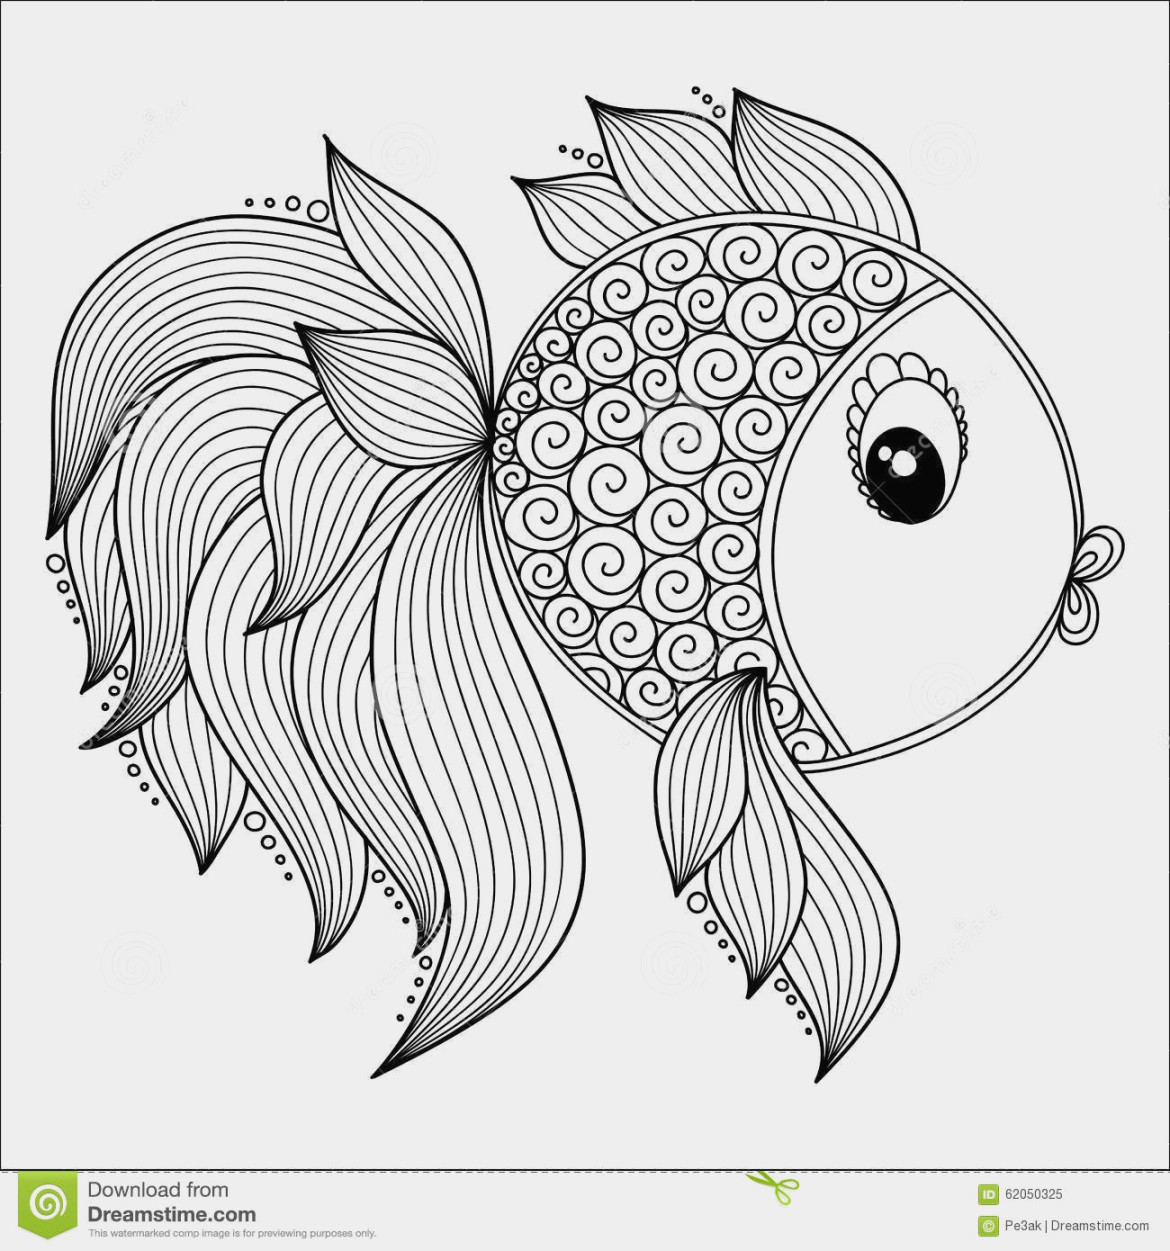 1170x1251 Henna Animal Coloring Pages Awesome Pattern For Book Cute Cartoon